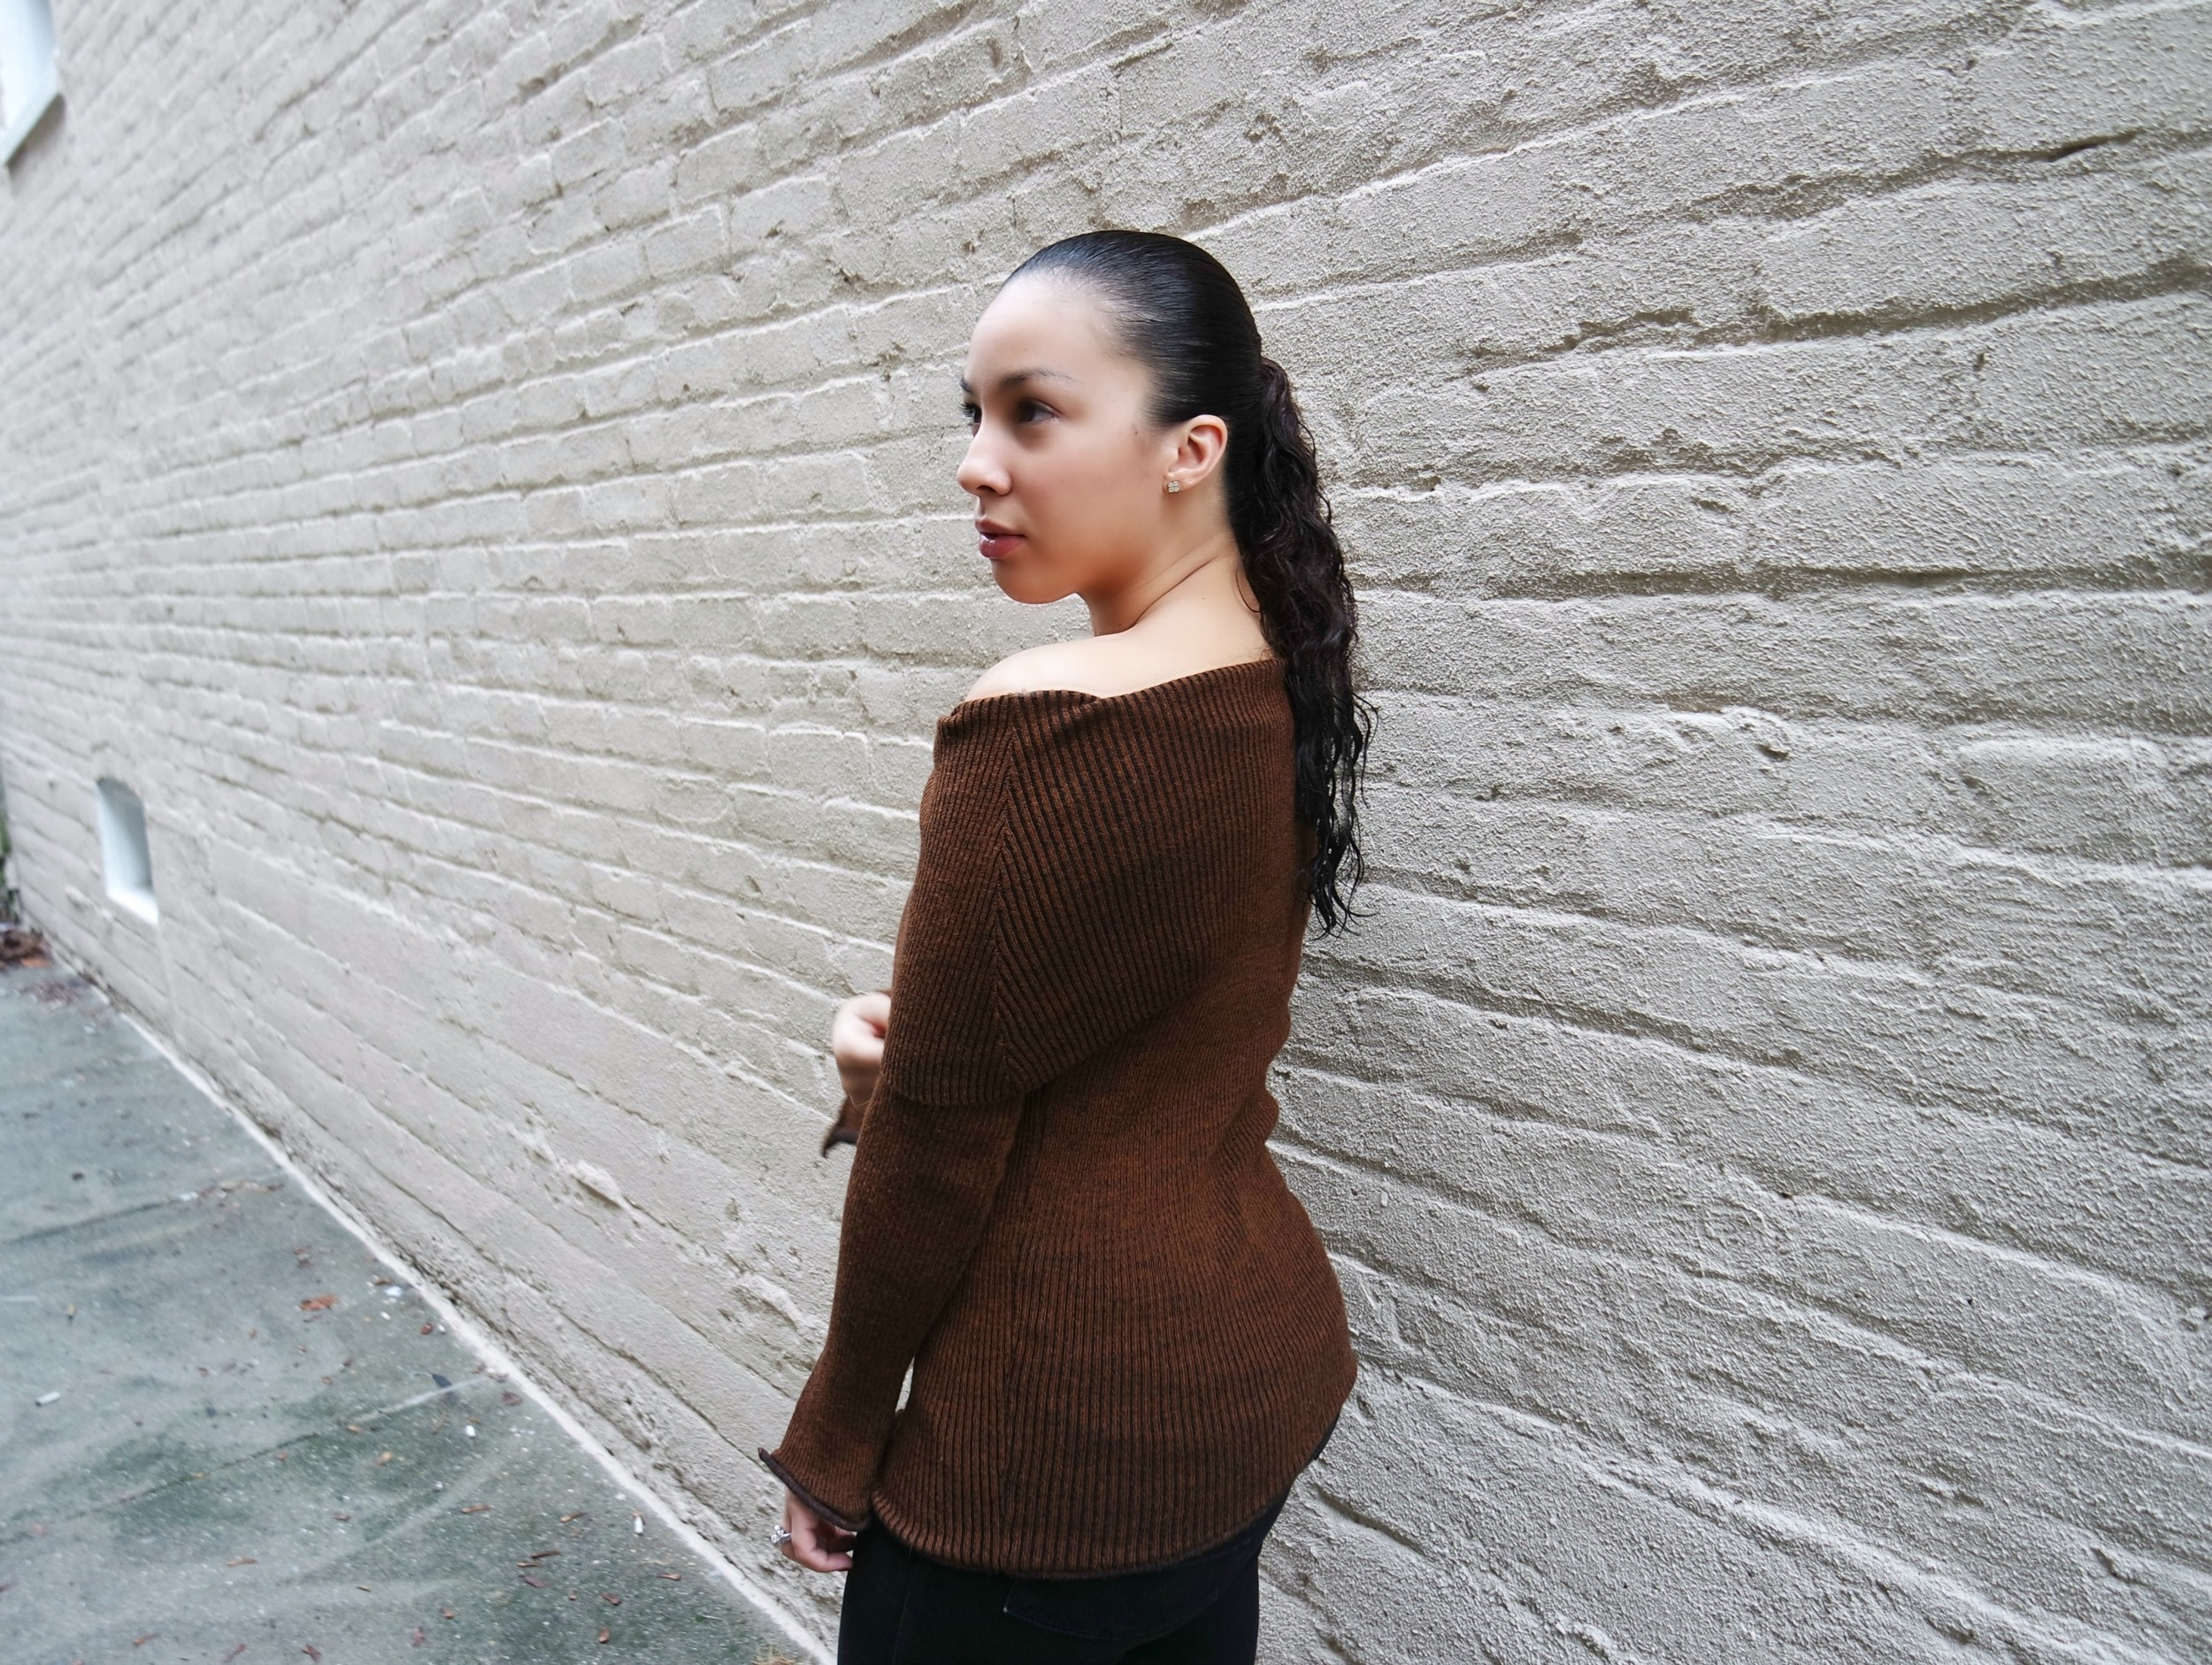 Boat Neck Sweater  (on sale!)| Black Jeans (old;  similar ) |  Lace-up Flats  | Gold Stud Earrings